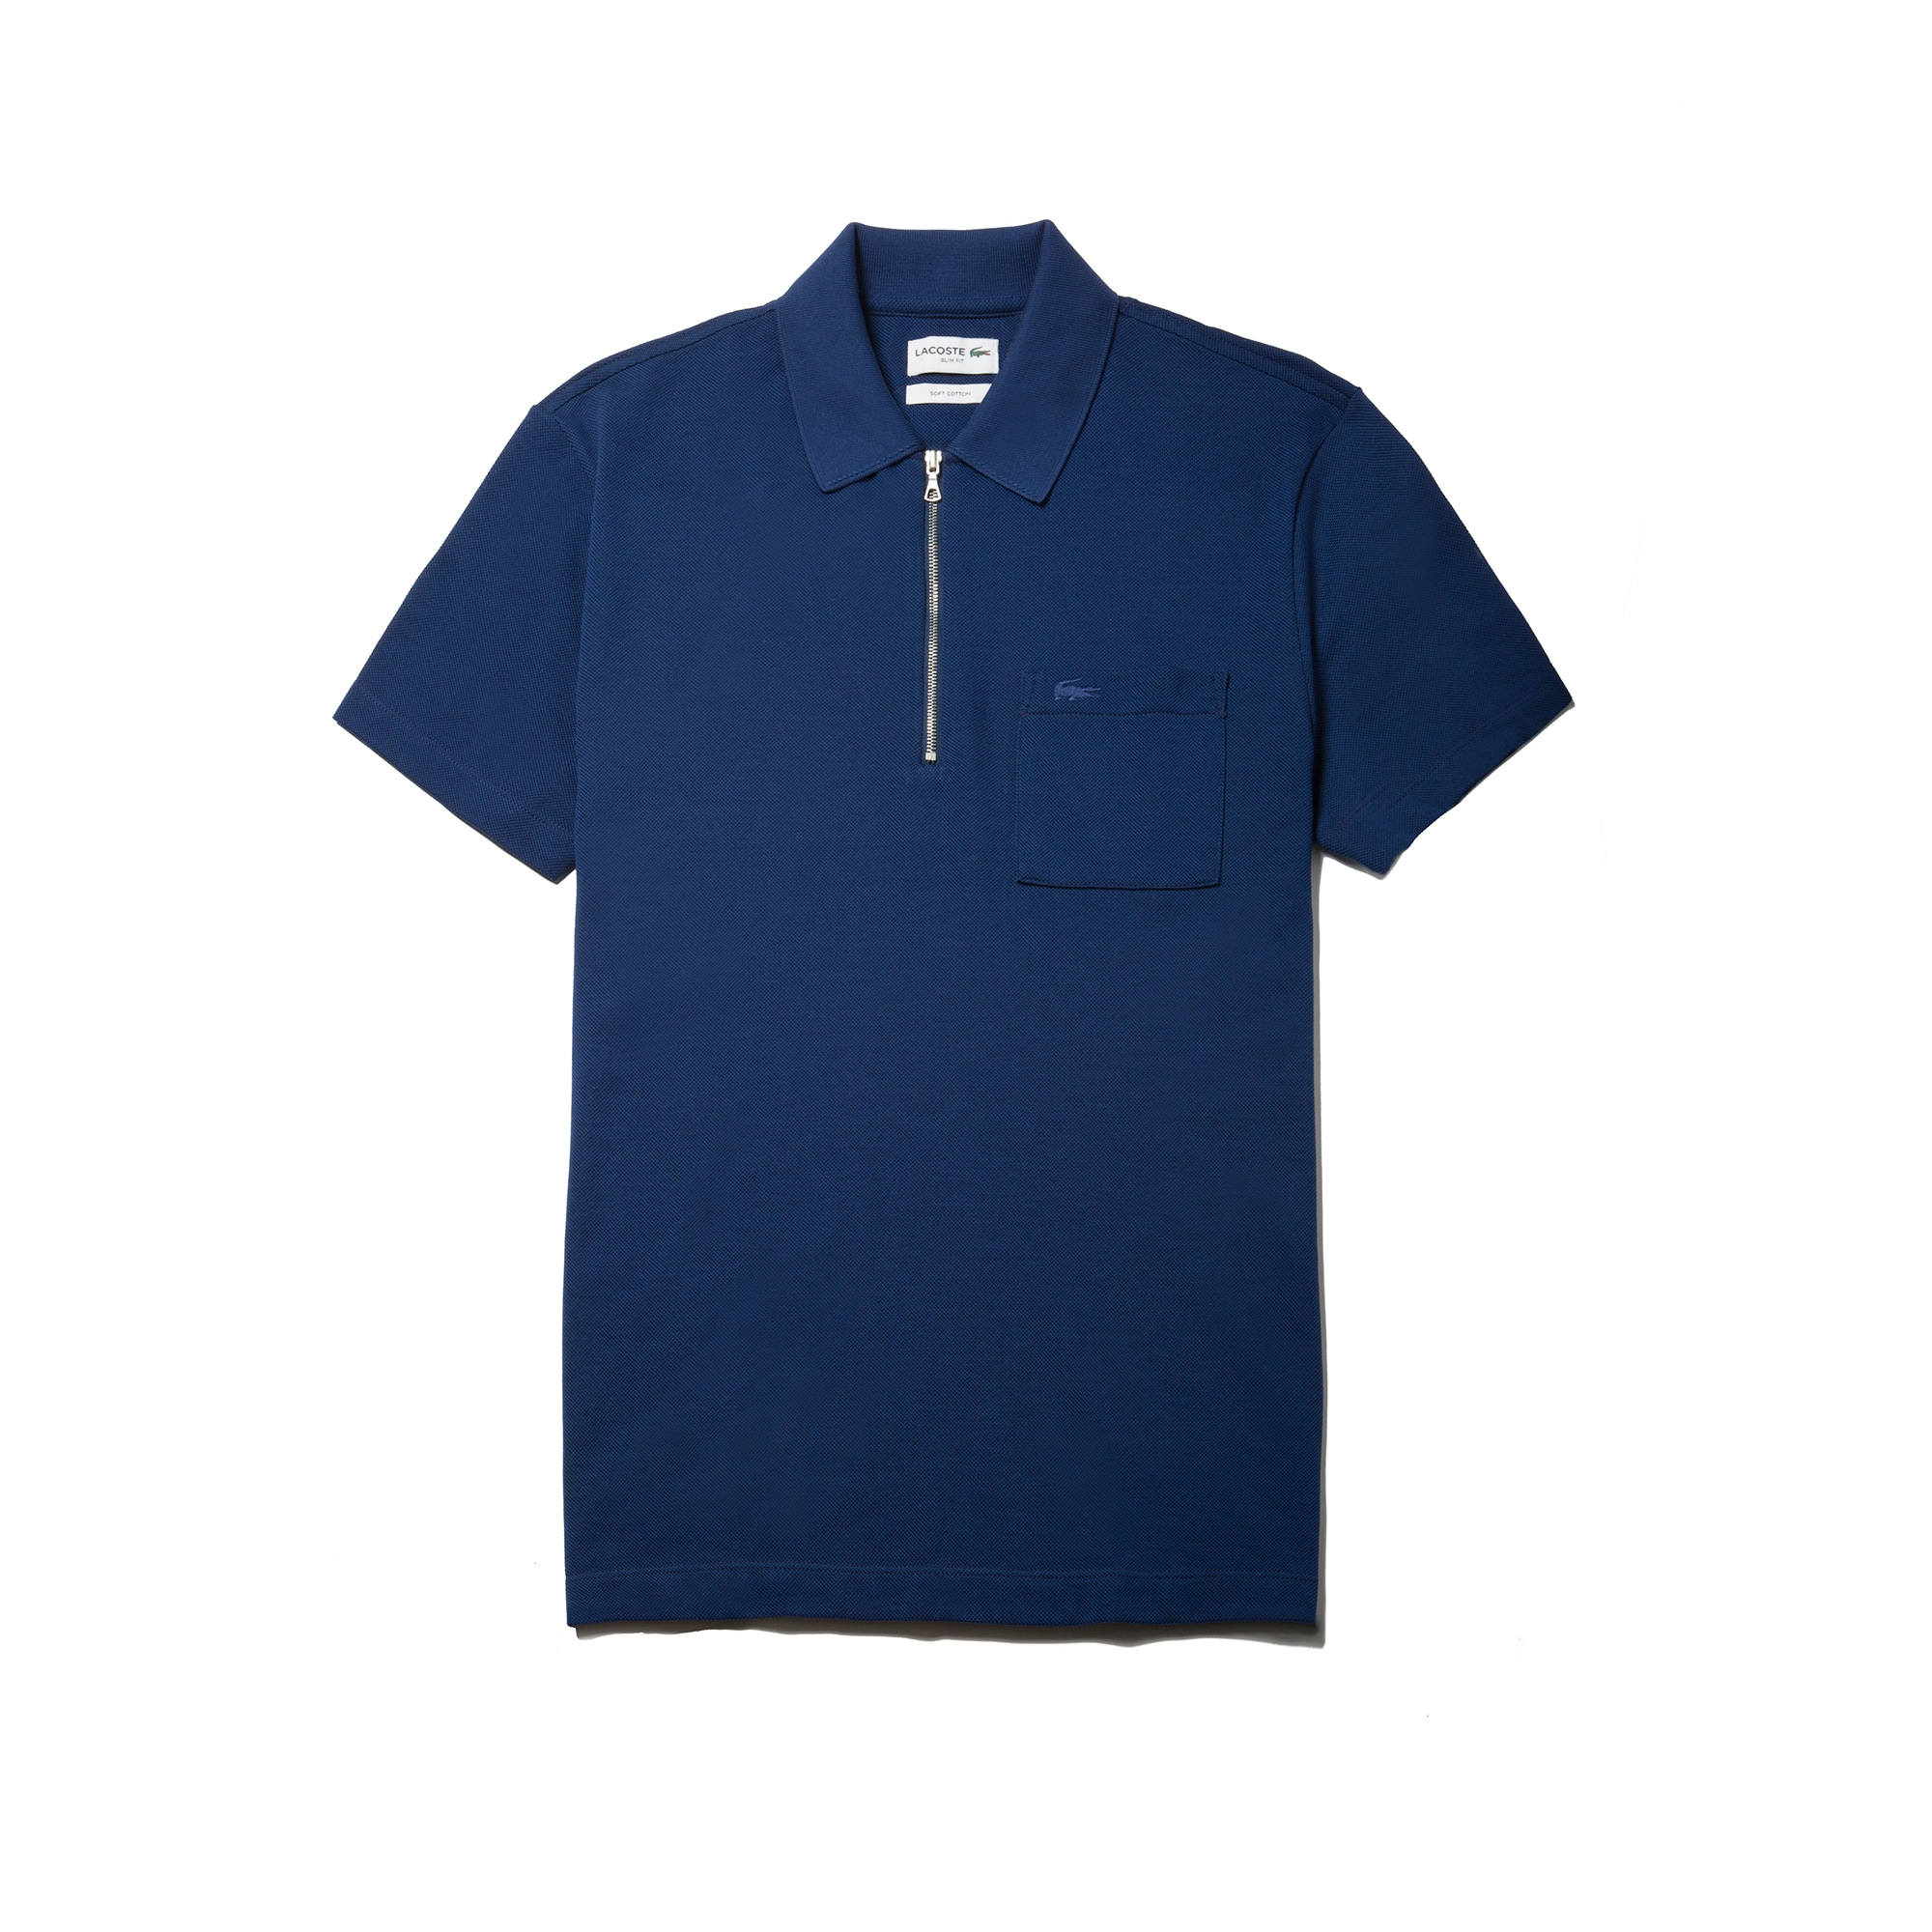 Men's  Slim Fit Zip Neck Cotton Piqué Polo by Lacoste